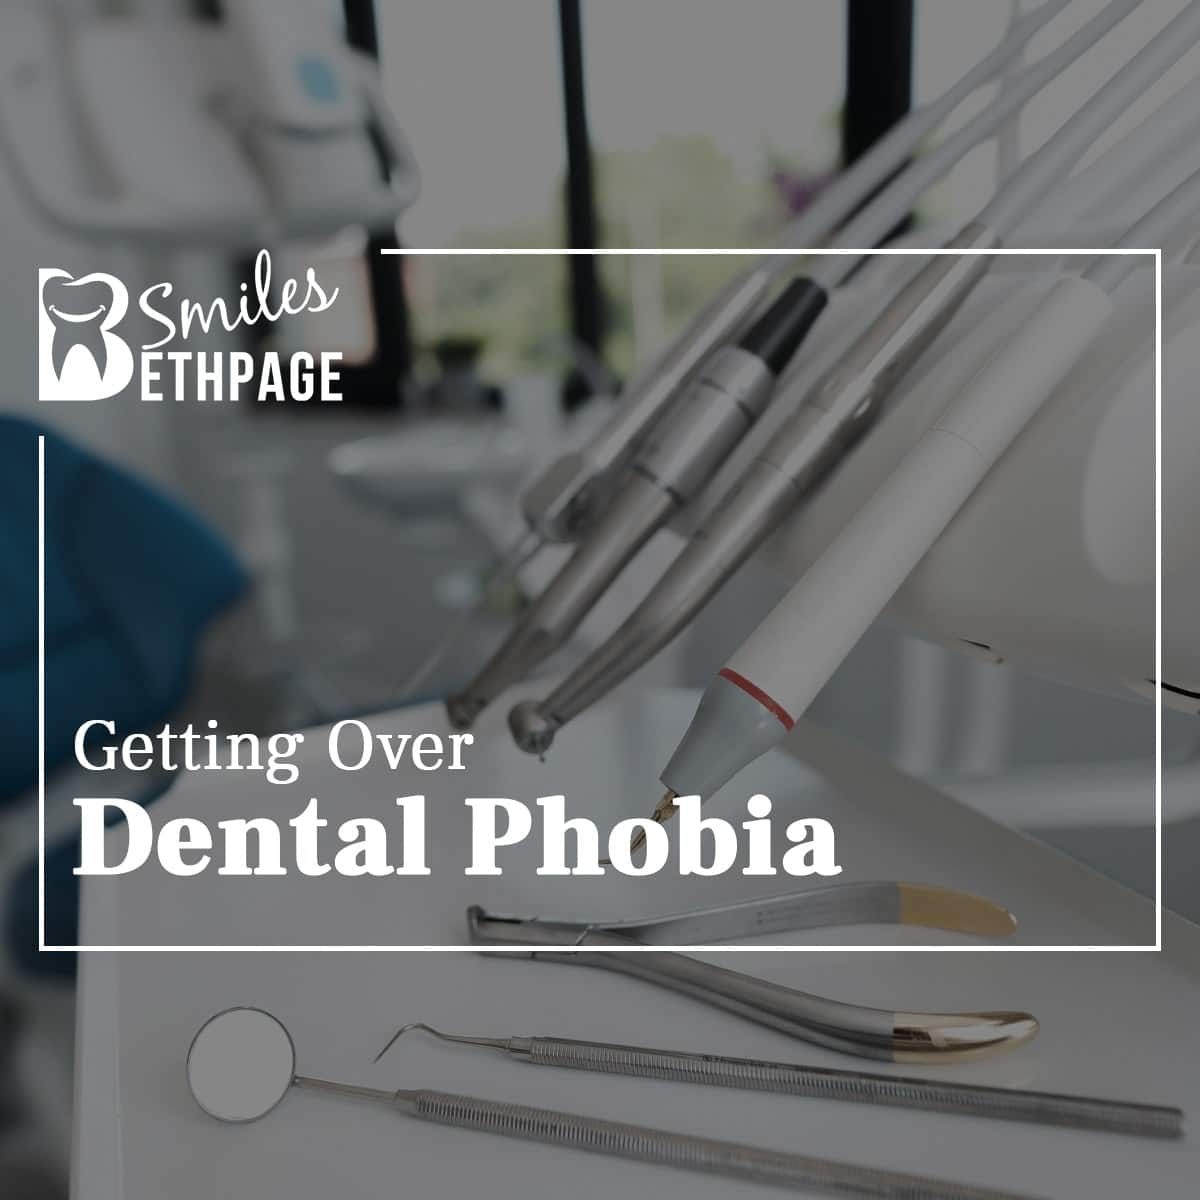 Getting Over Dental Phobia